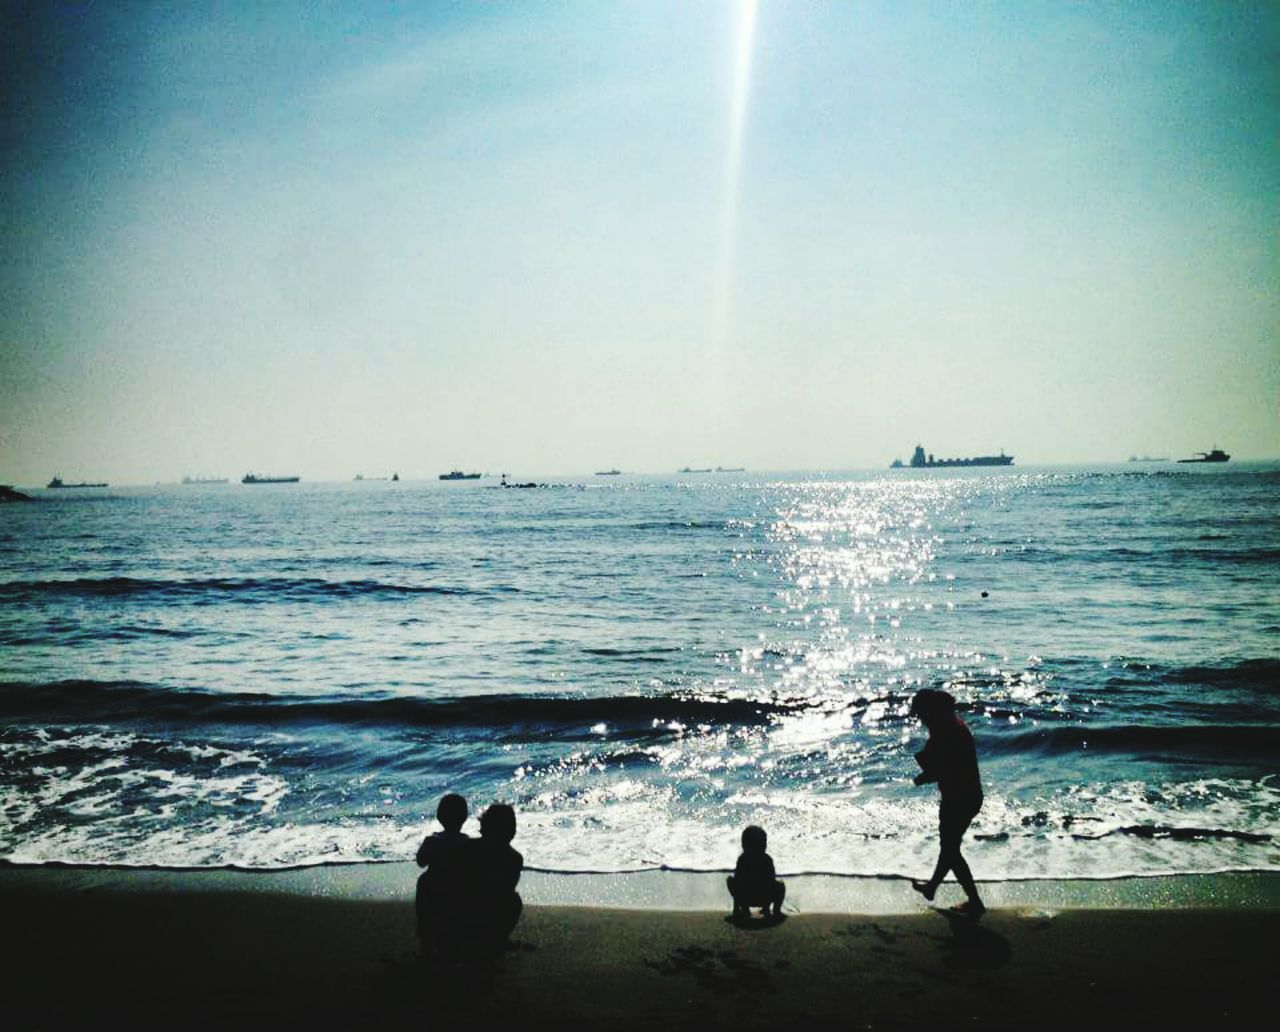 sea, real people, water, leisure activity, beach, nature, horizon over water, standing, wave, togetherness, silhouette, vacations, men, beauty in nature, lifestyles, scenics, boys, childhood, motion, outdoors, sky, son, women, day, sand, clear sky, full length, people